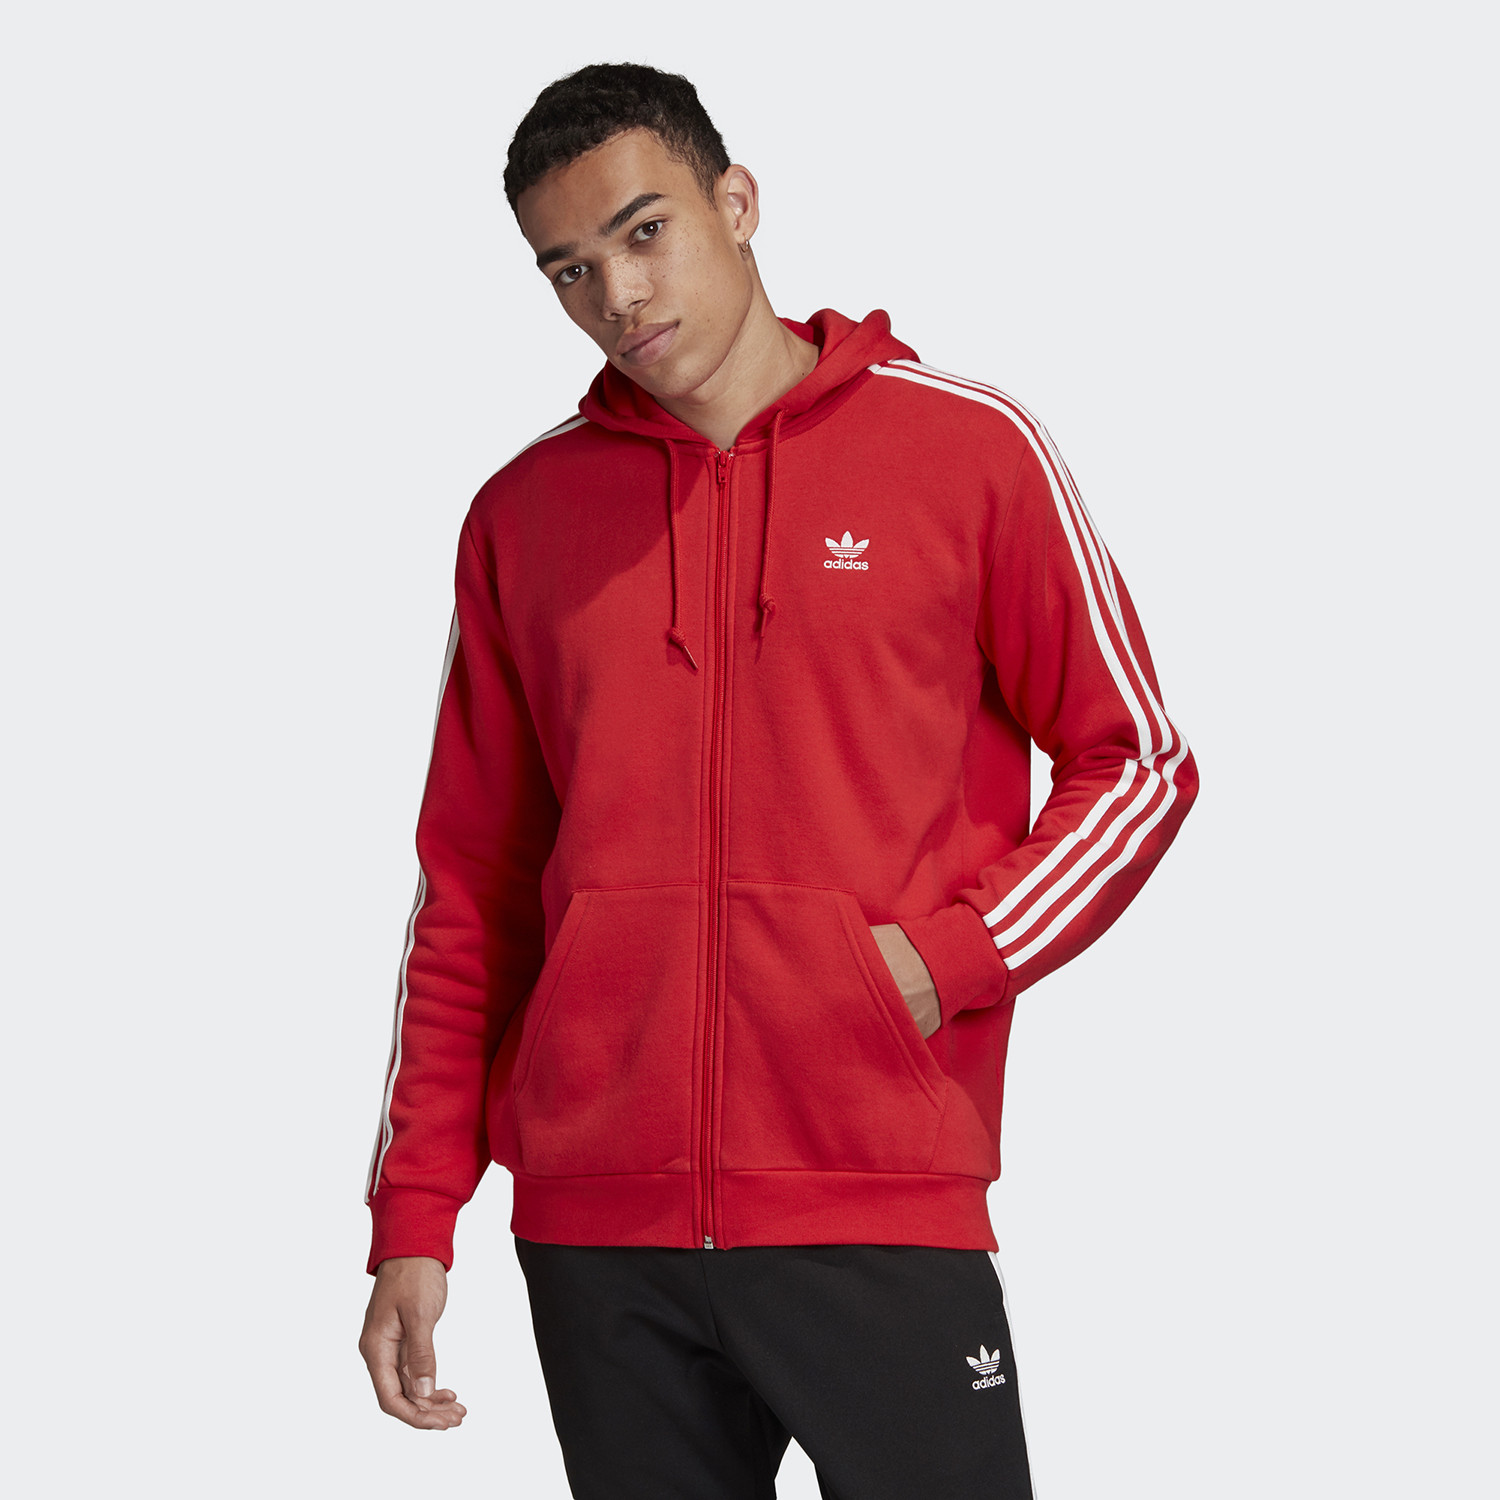 adidas Originals 3-Stripes Fleece Jacket (9000045548_18021)